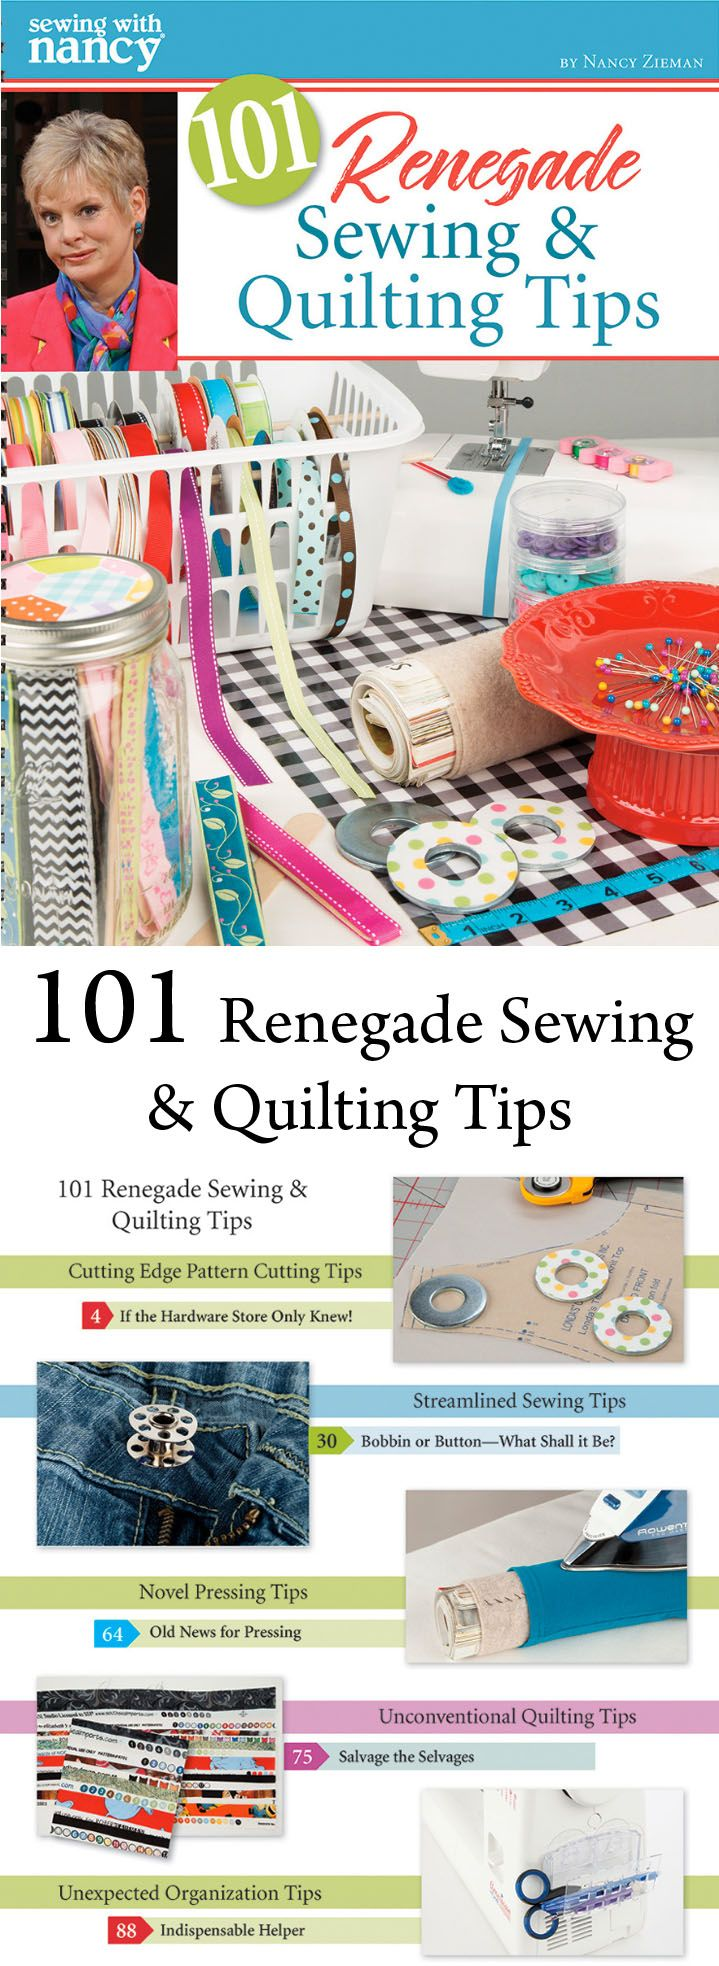 Make sewing trouble-free with 101 unconventional hacks. Known for breaking sewing and quilting rules, Nancy Zieman shows you how to use household items to save time and money in your sewing room, plus learn novel ways to organize sewing and quilting supplies. Nancy's Notions - Sewing With Nancy